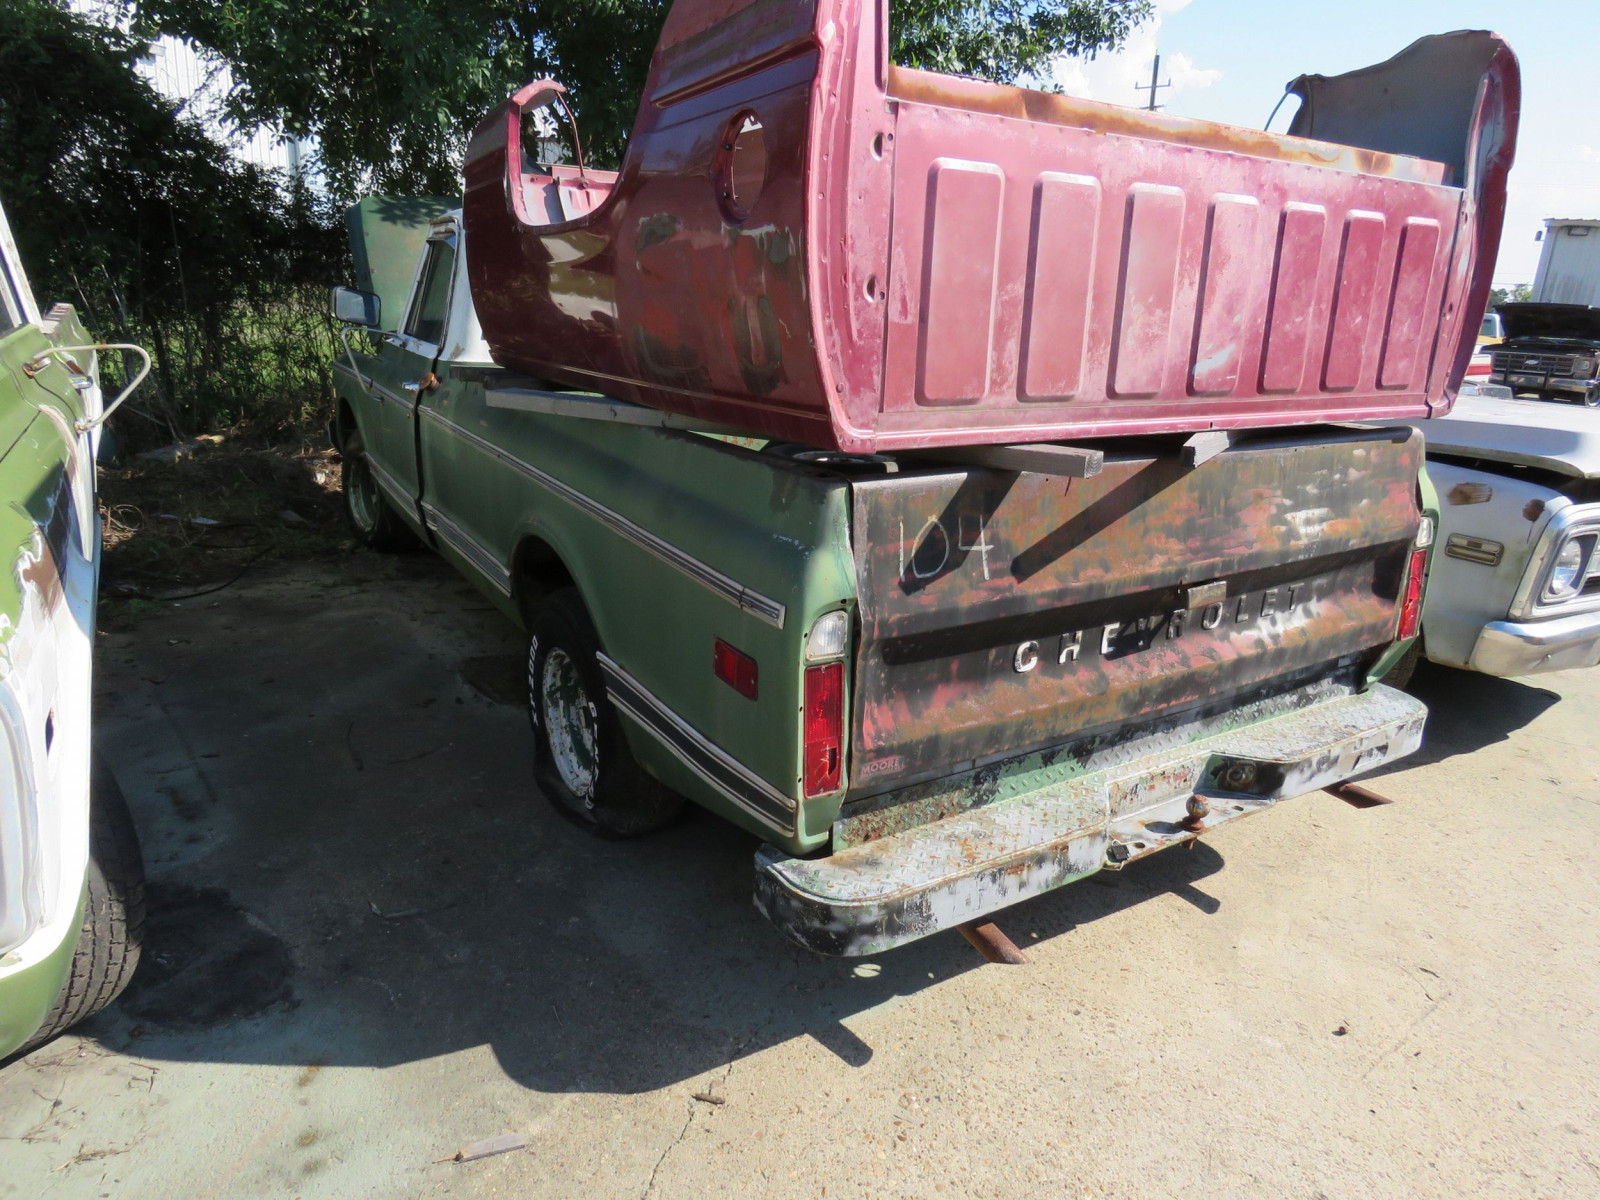 1970 Chevrolet C-10 Custom 1/2 ton Pickup - Image 3